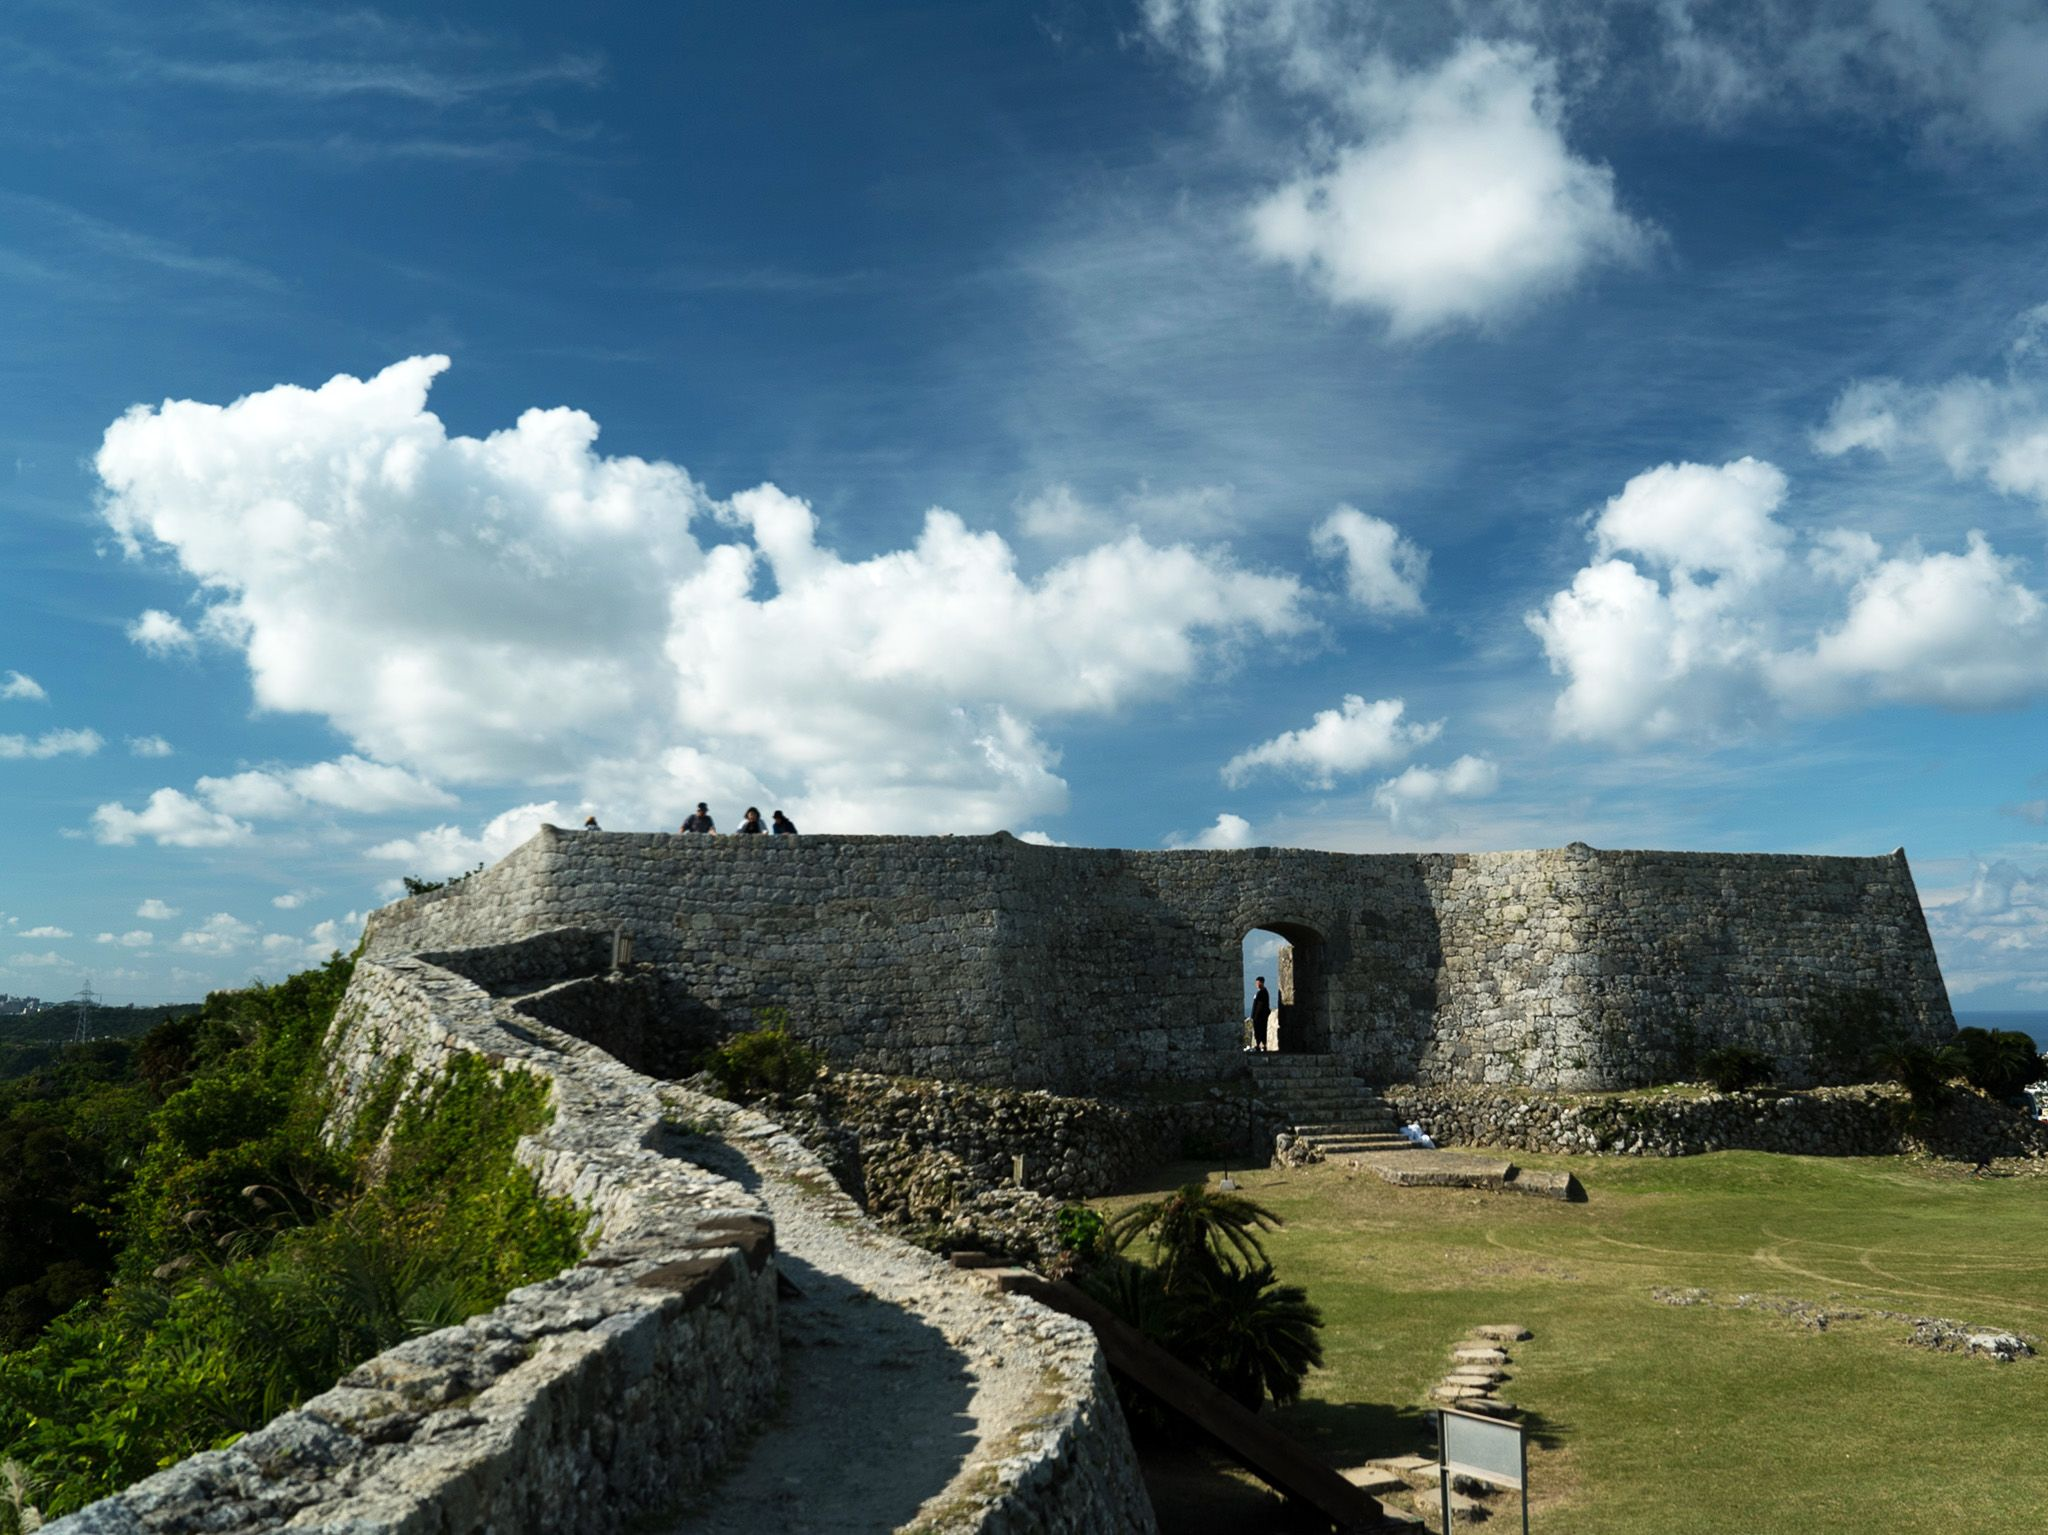 Yonaguni:  Monument at Yonaguni.  This image is from Drain the Oceans. [Photo of the day - July 2018]